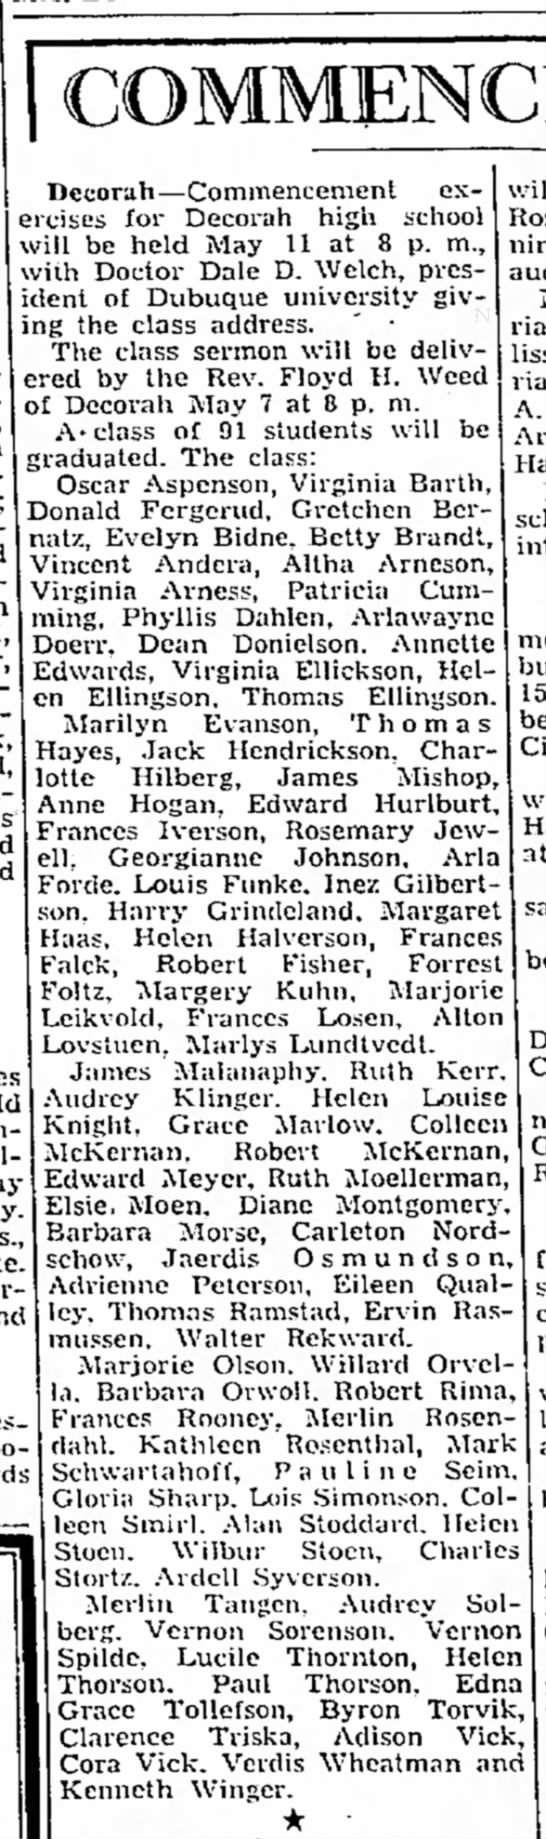 1944 Diane Graduation Mason City Globe Gazette 4.29.1944 - Becorah—Commencement exercises exercises for...